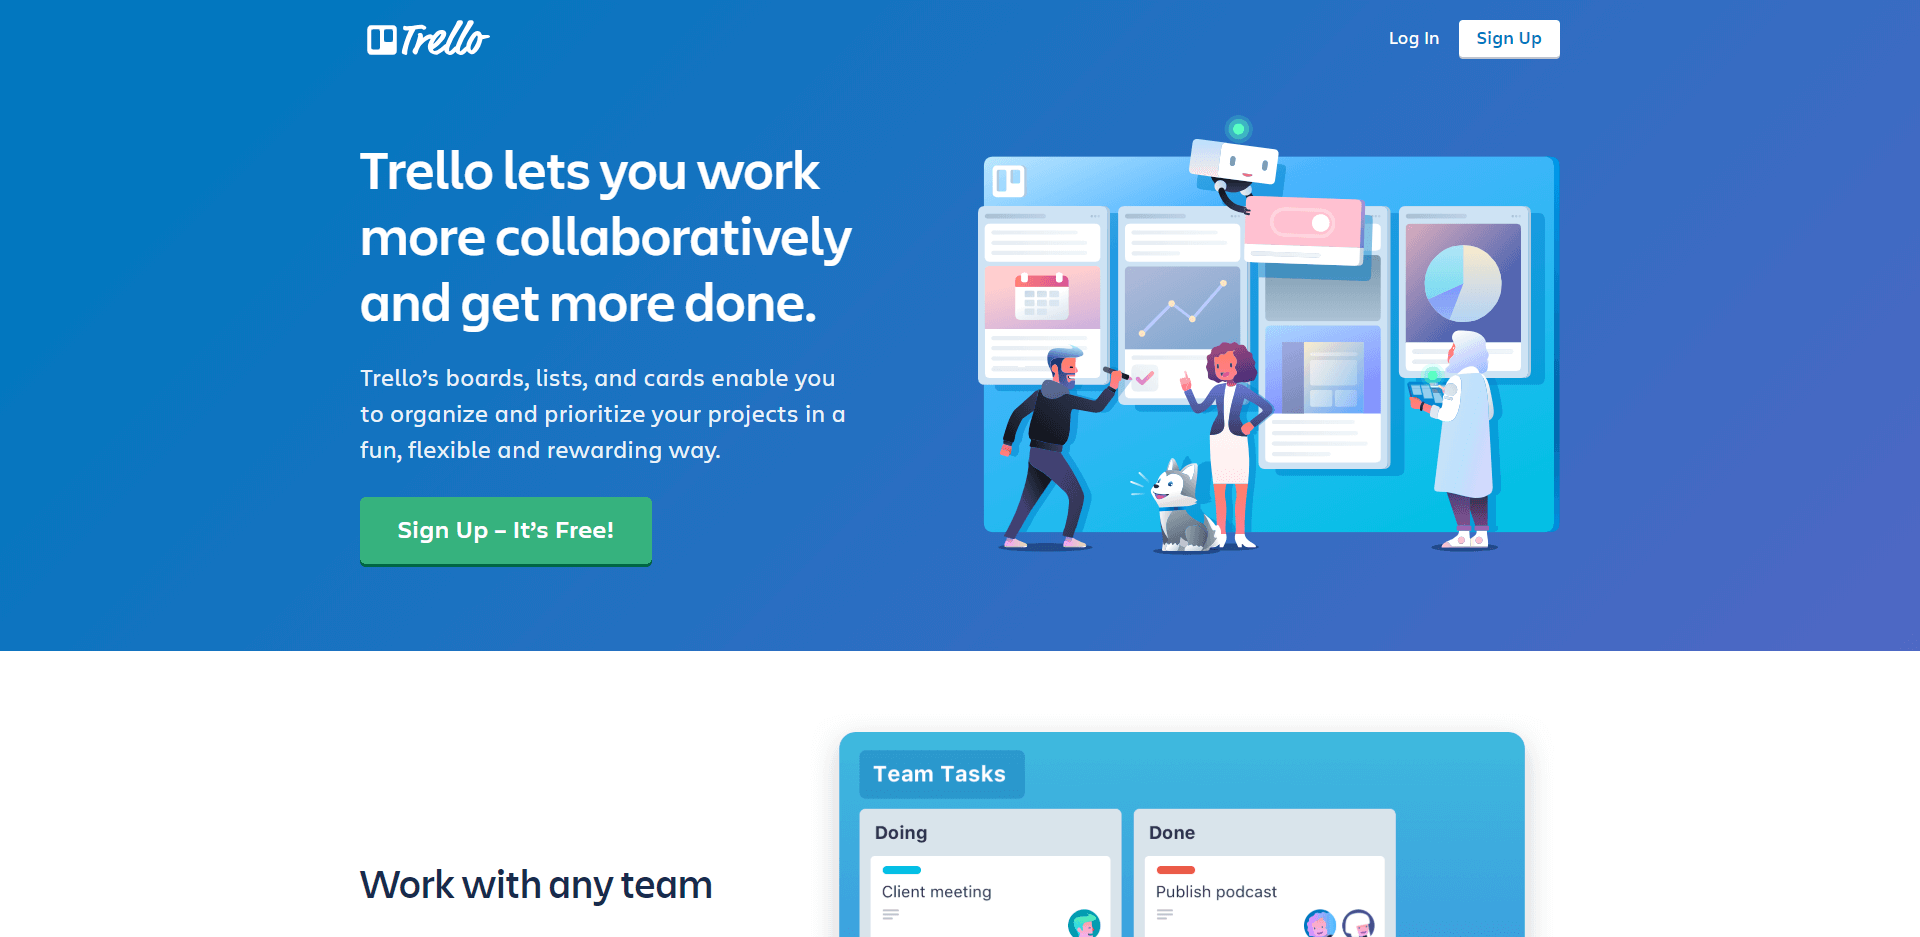 Trello lets you work more collaboratively and get more done